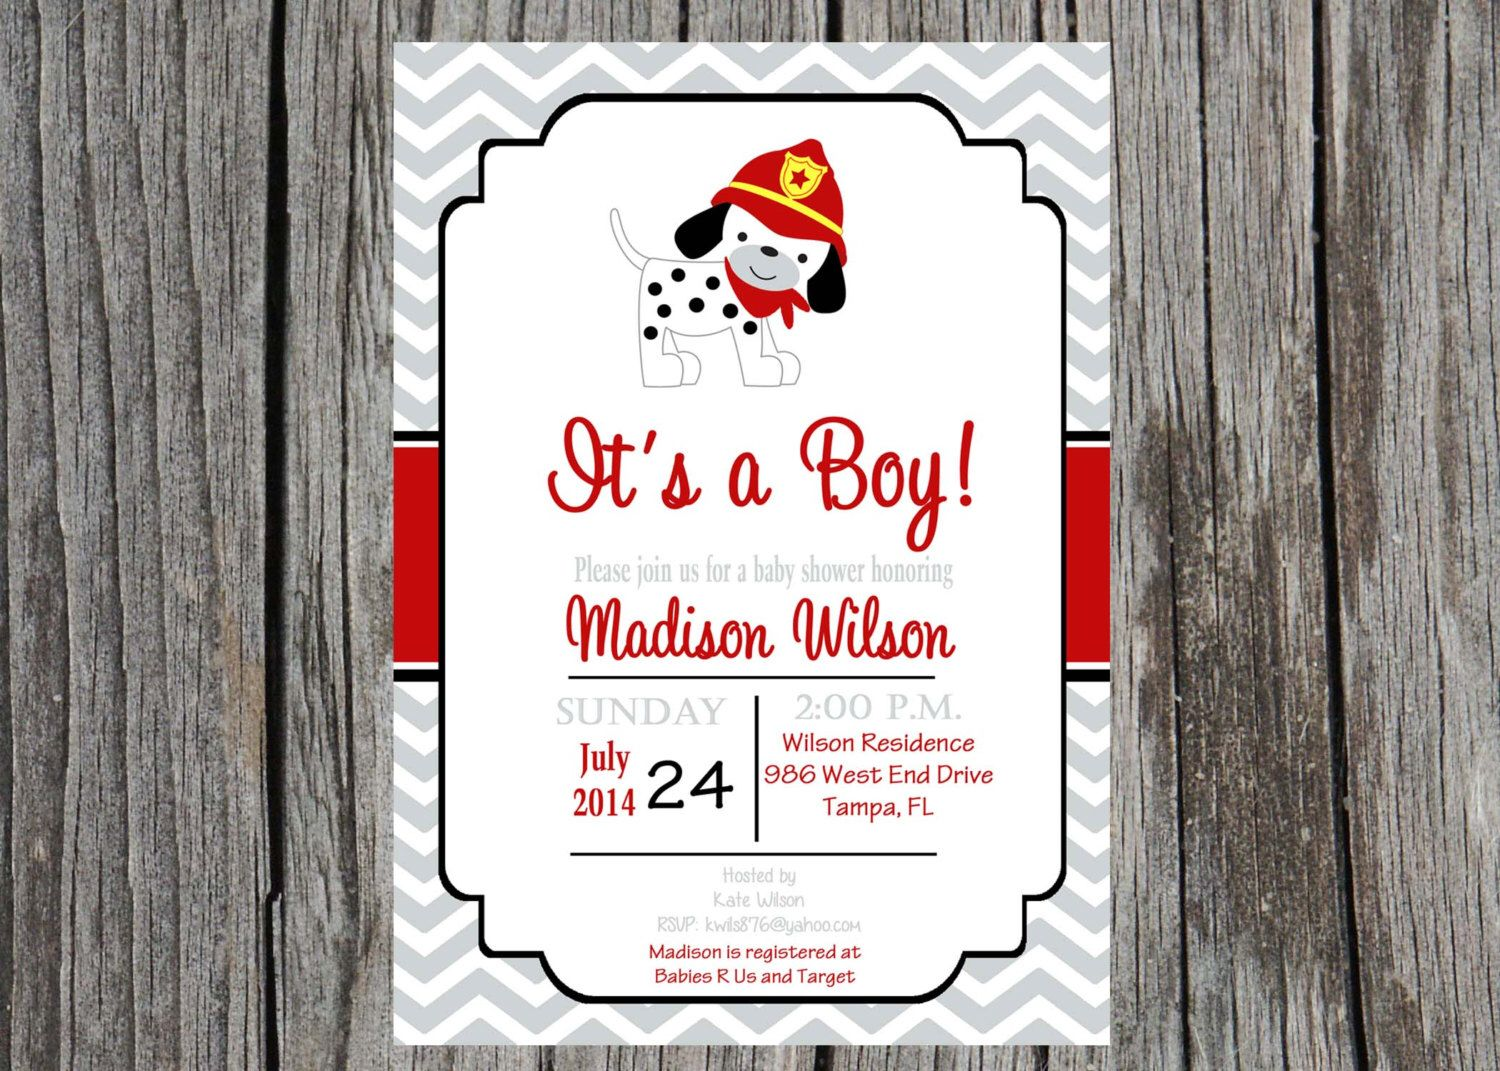 Fireman baby shower invitation, dalmatian invitation, firefighter ...